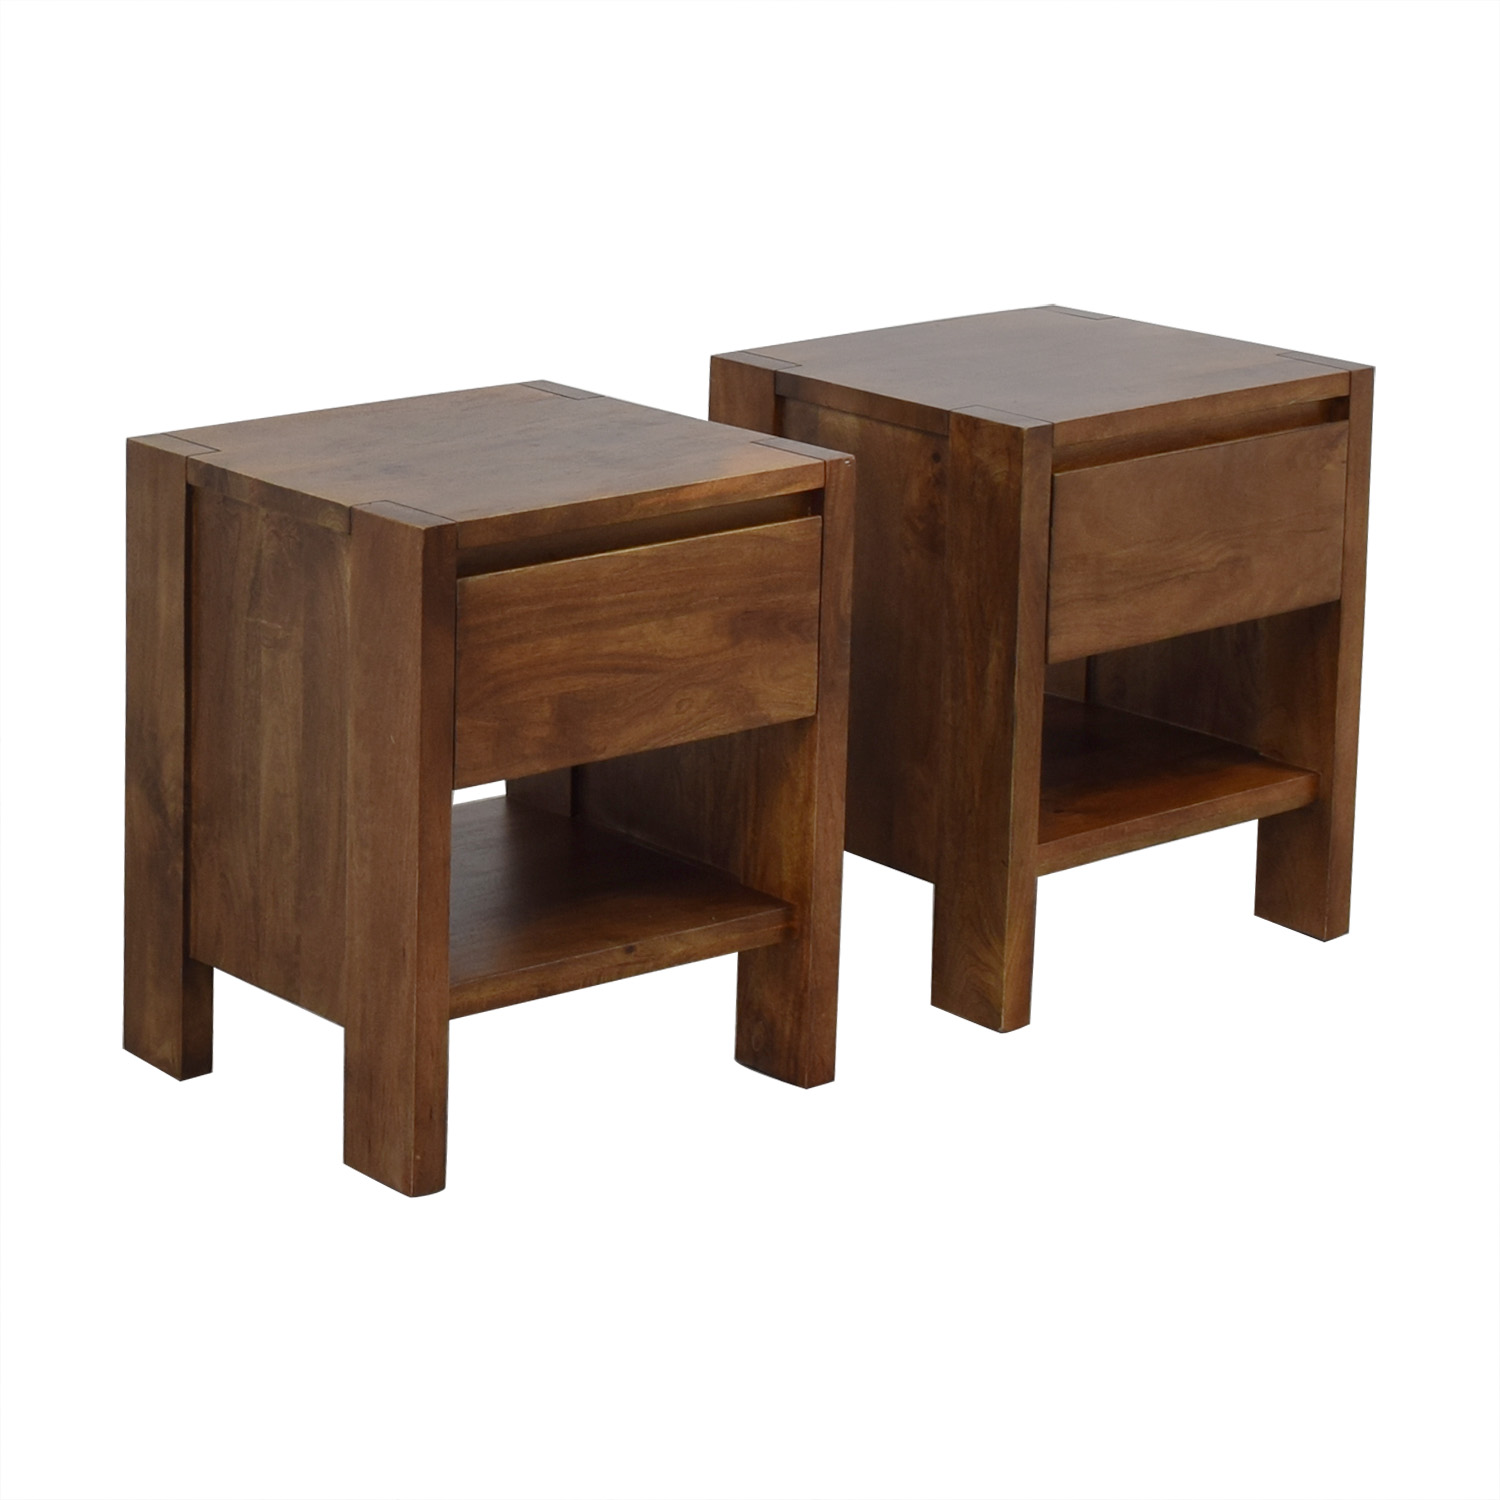 Crate & Barrel Crate & Barrel Nightstands discount